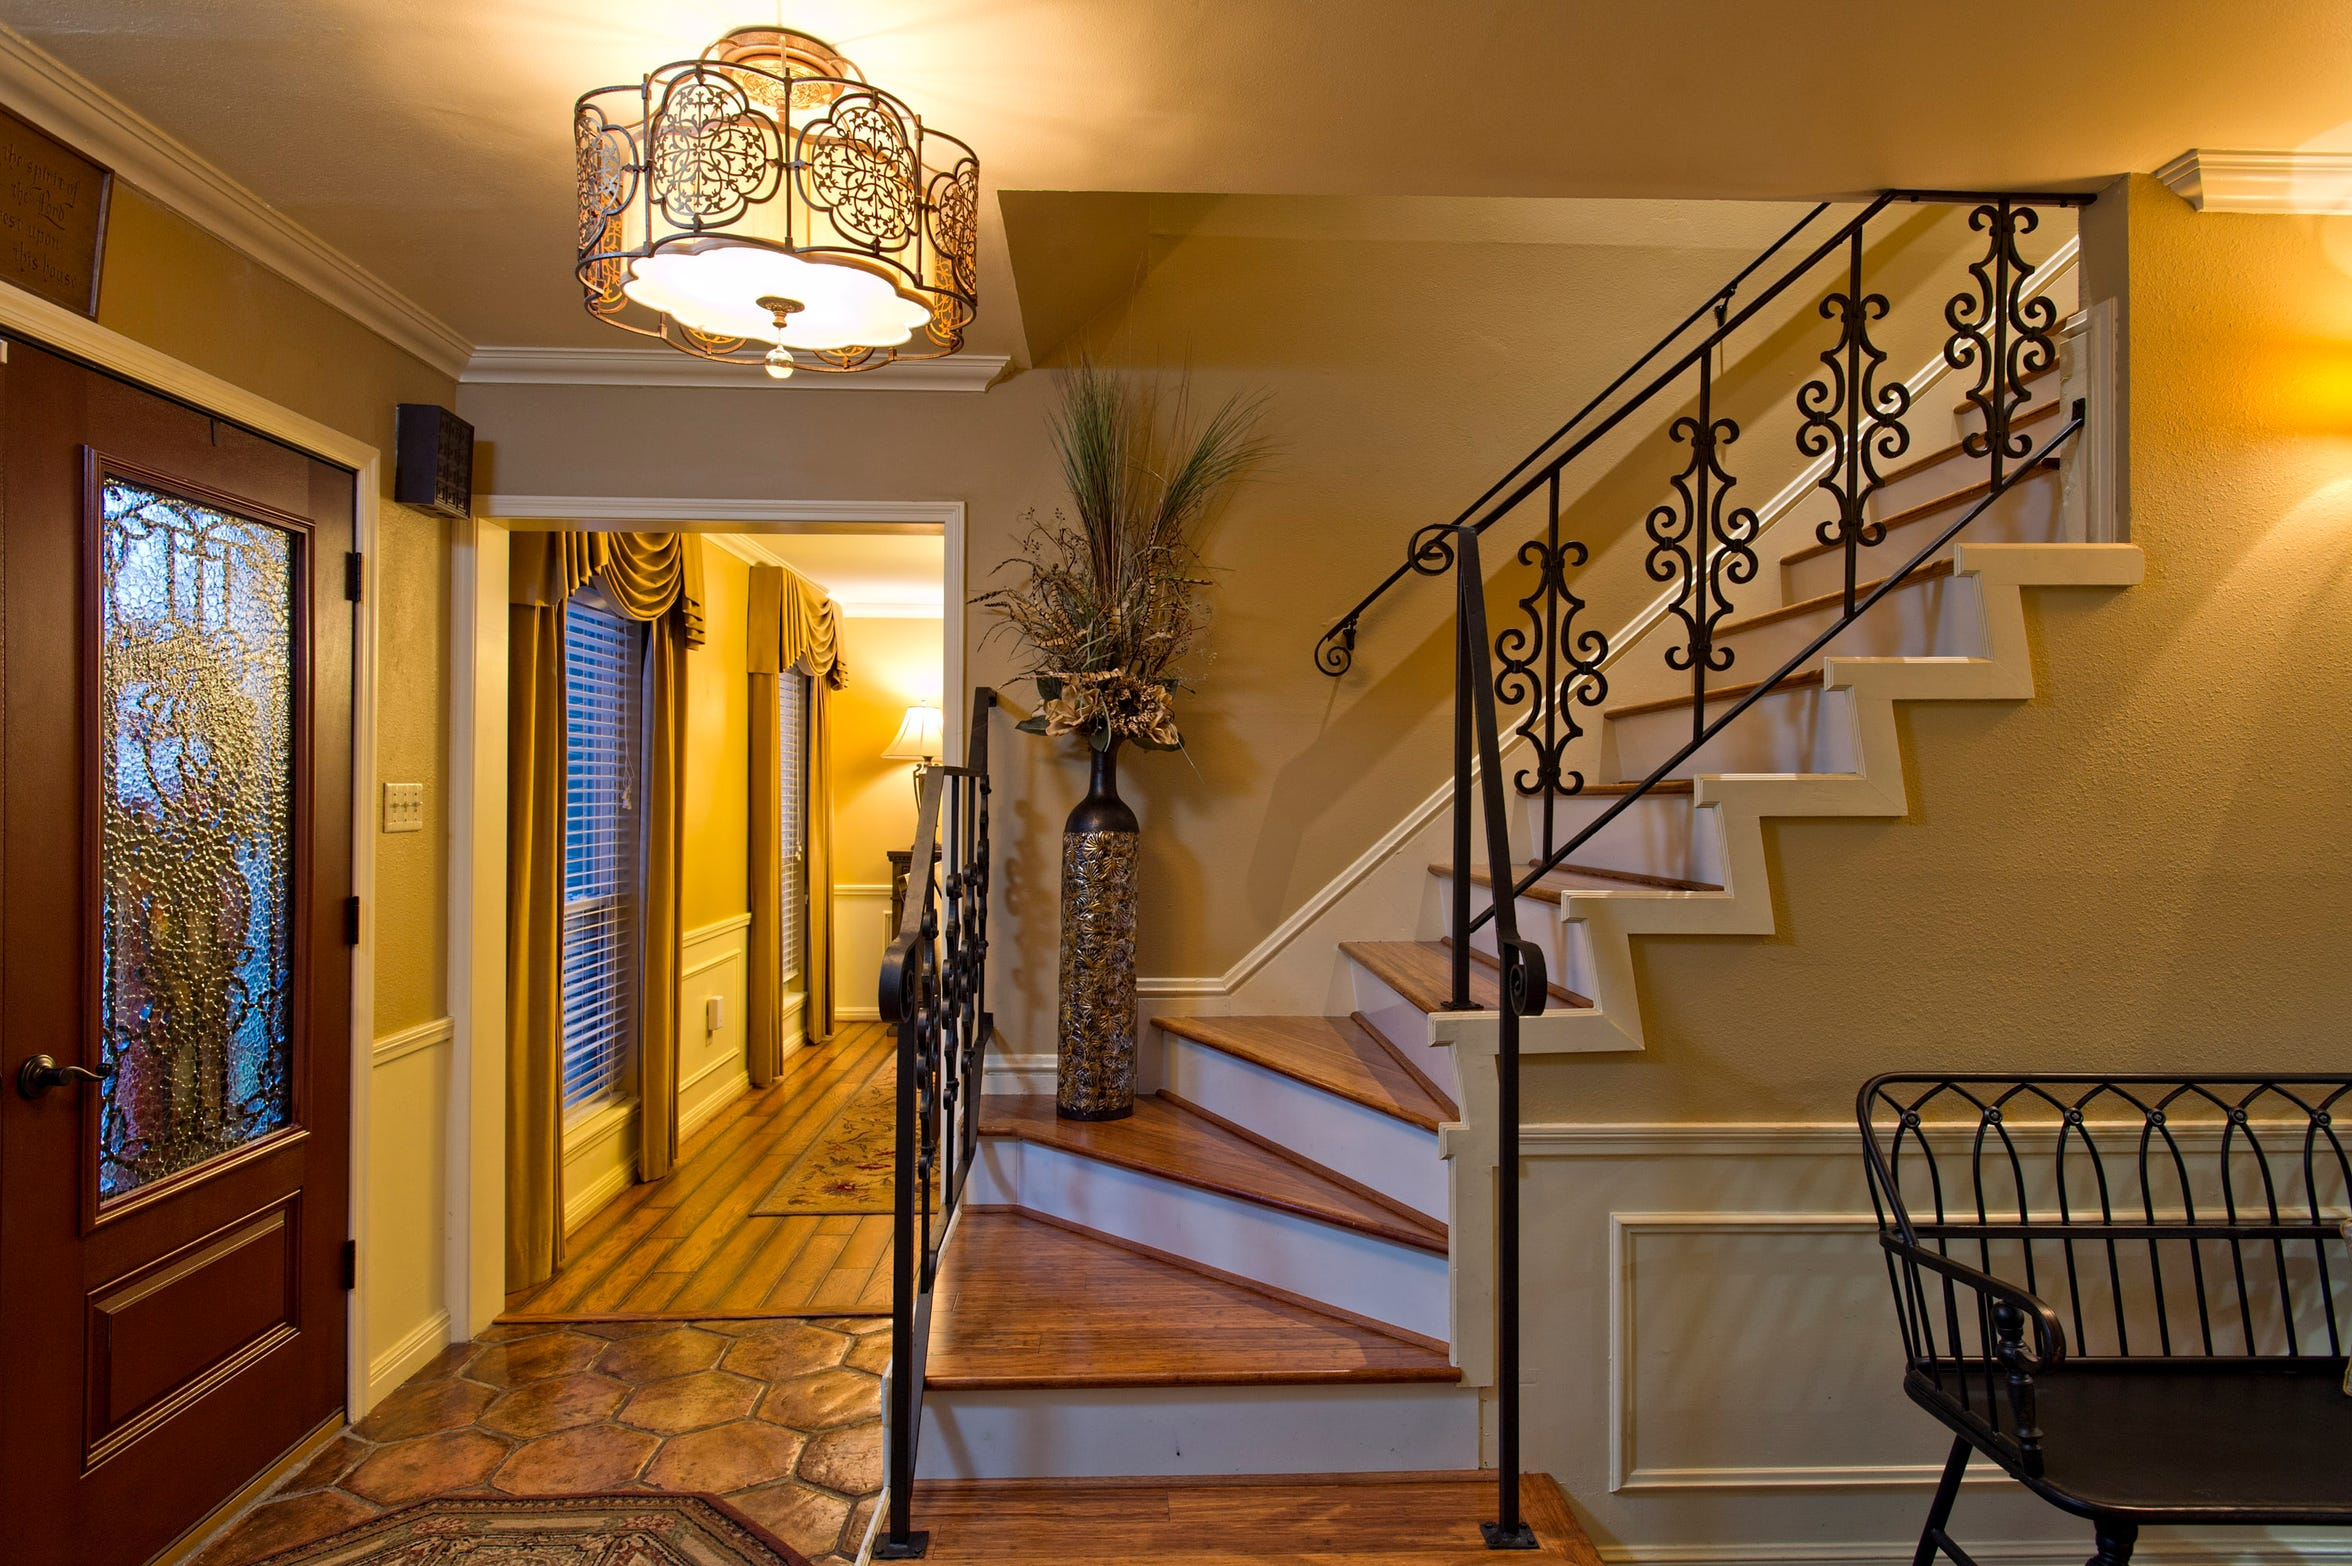 A striking wrought iron and wood stairway rises from the saltillo tiled  entry foyer